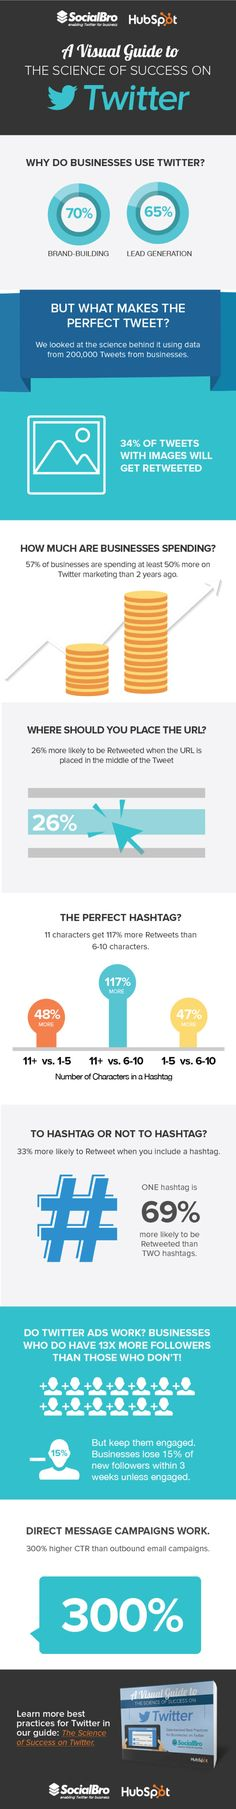 The Science of Twitter Success [Infographic] (by HubSpot)